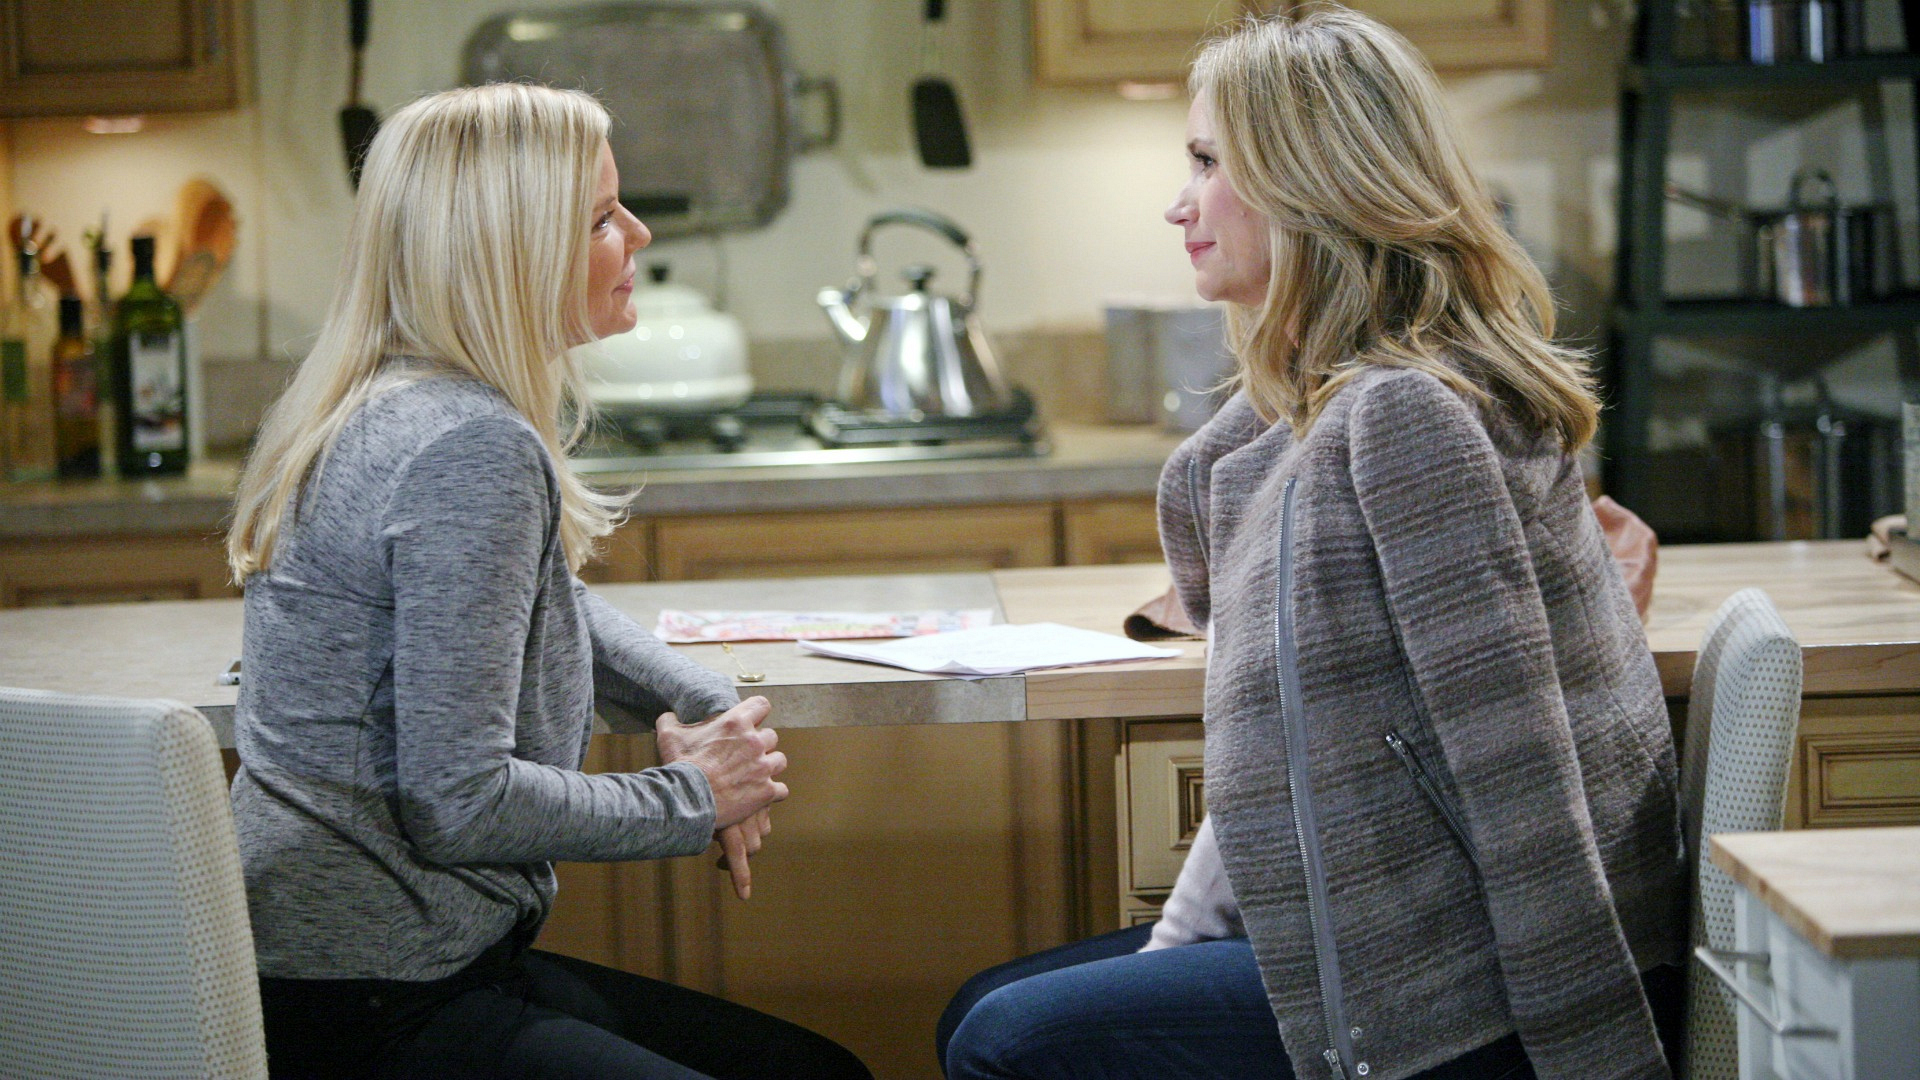 Bridget lends a supportive ear as Brooke confides in her feelings for Bill and her fallout with Katie.